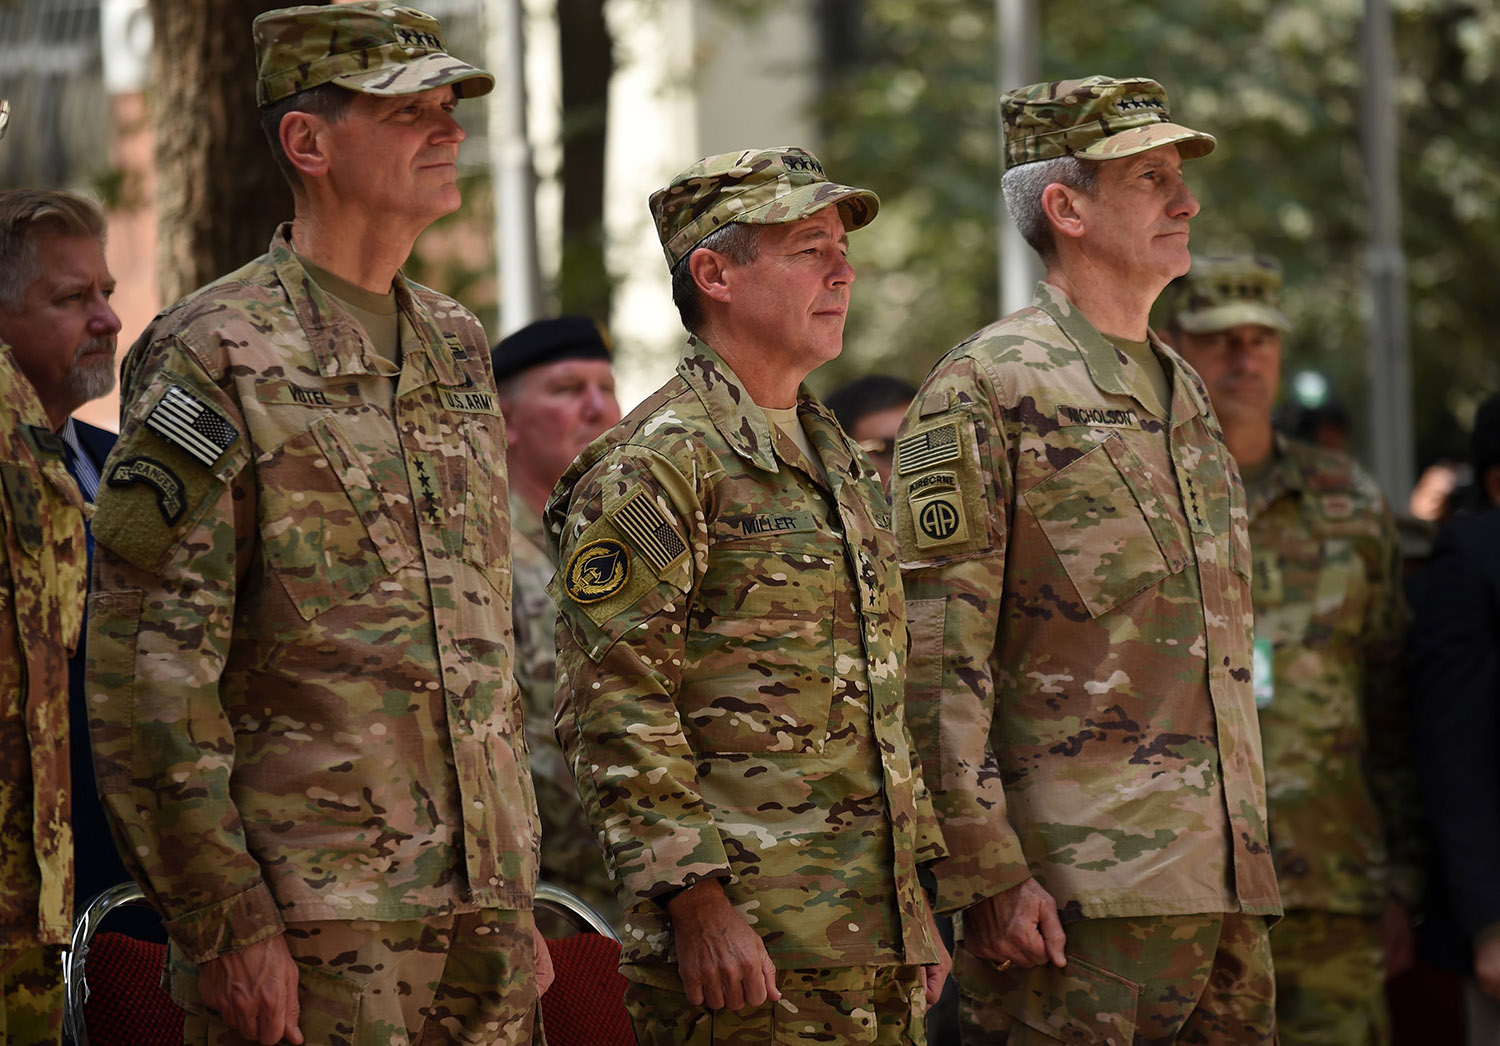 Incoming General Scott Miller (C), command of US and NATO forces in Afghanistan, outgoing U.S. Army General John Nicholson (R) and U.S. army General Votel (L) look on during a change of command ceremony at Resolute Support in Kabul on September 2, 2018. - General Scott Miller took command of US and NATO forces in Afghanistan on September 2, as worsening violence erodes hopes for peace in the war-torn country. WAKIL KOHSAR/AFP/Getty Images)